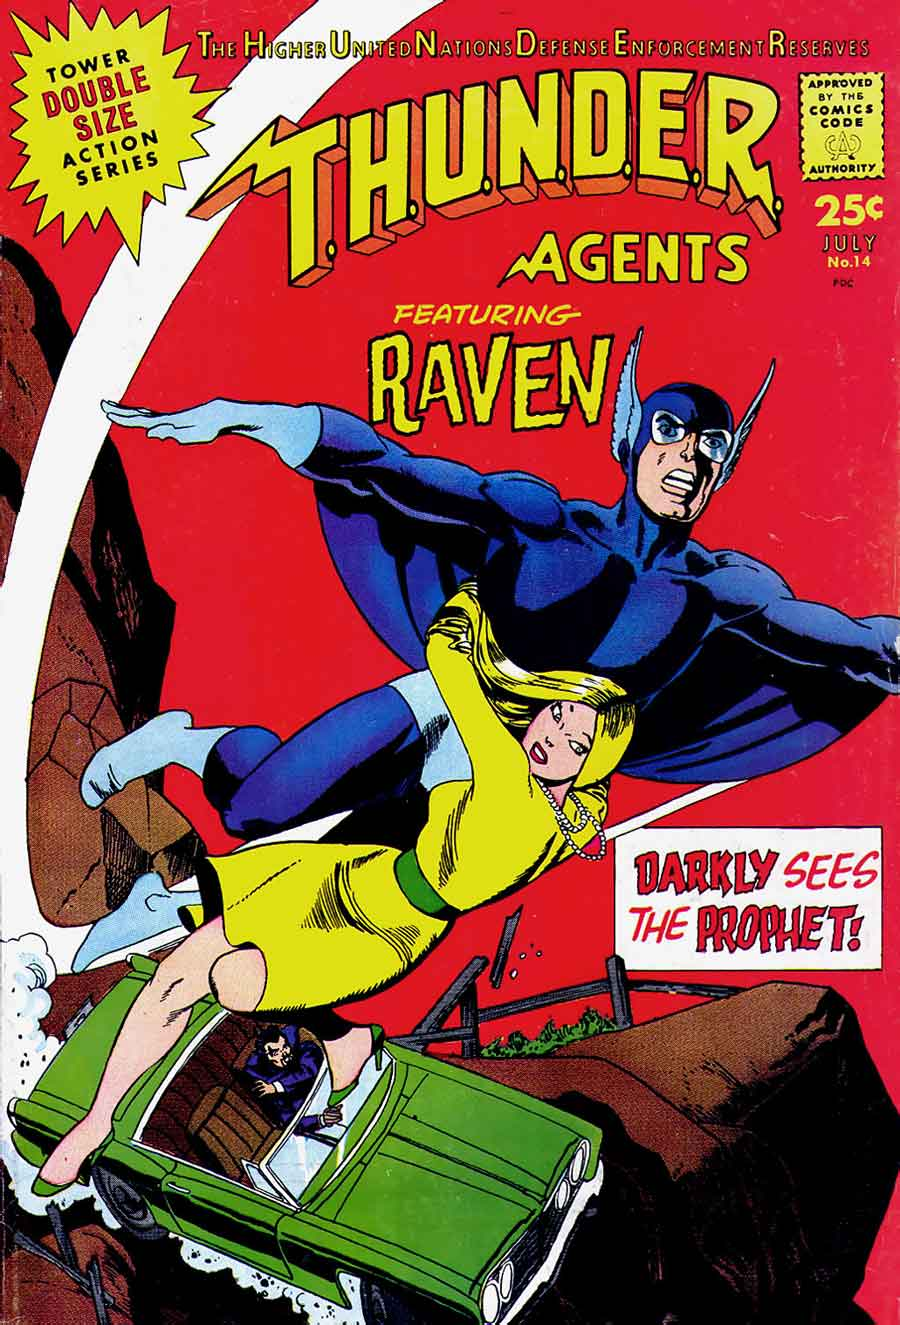 Thunder Agents v1 #14 tower silver age 1960s comic book cover art